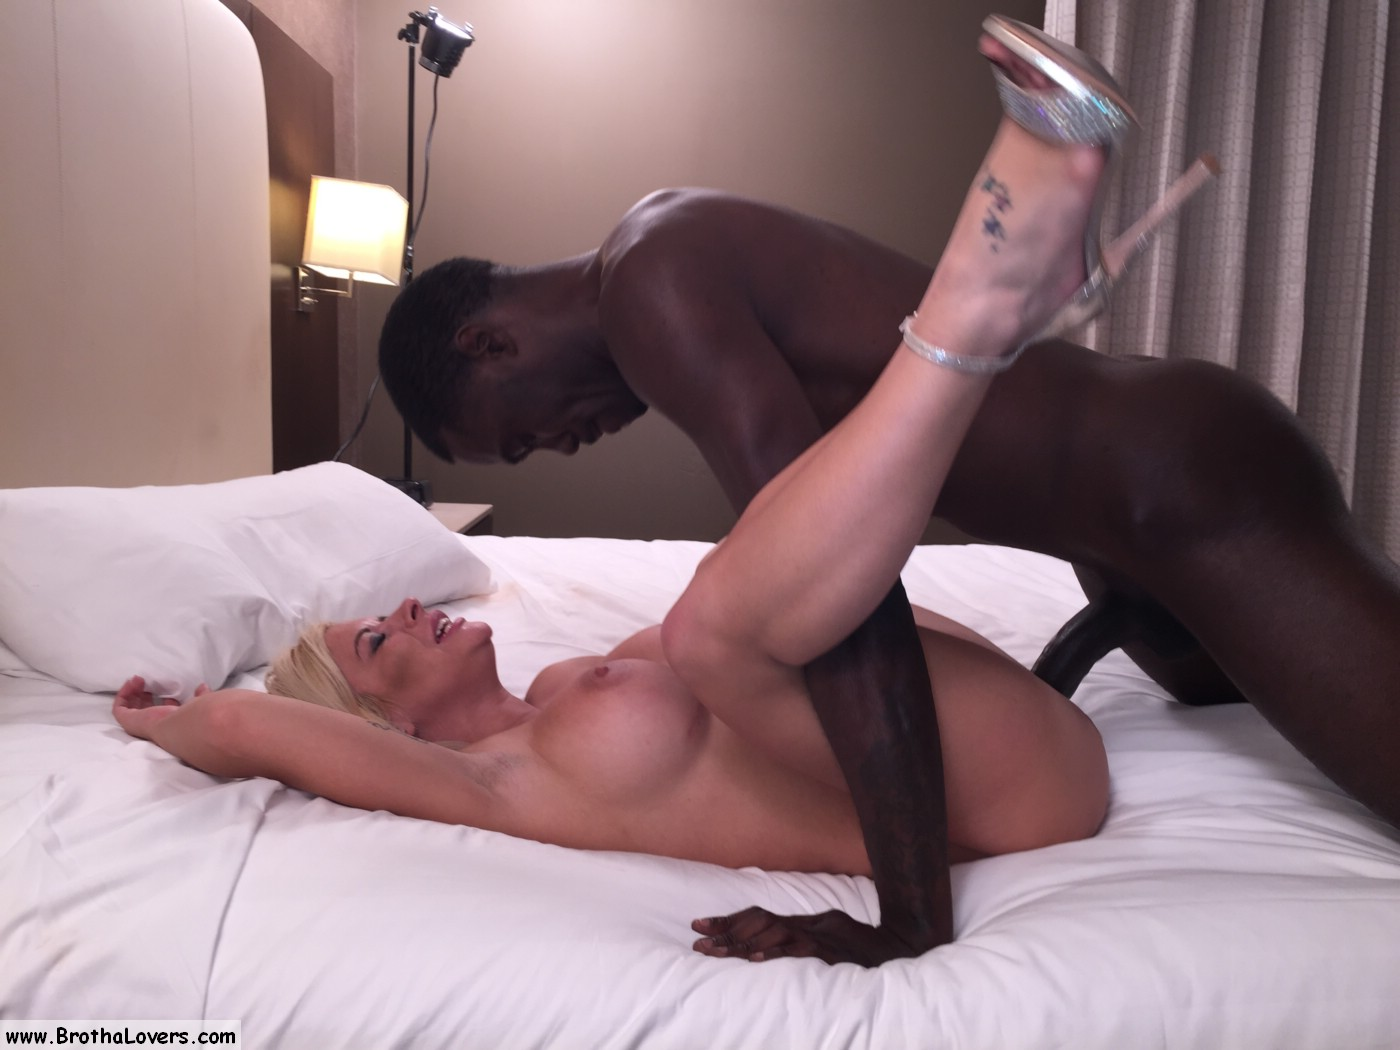 2 men fucked my wife and creampied her - 3 3